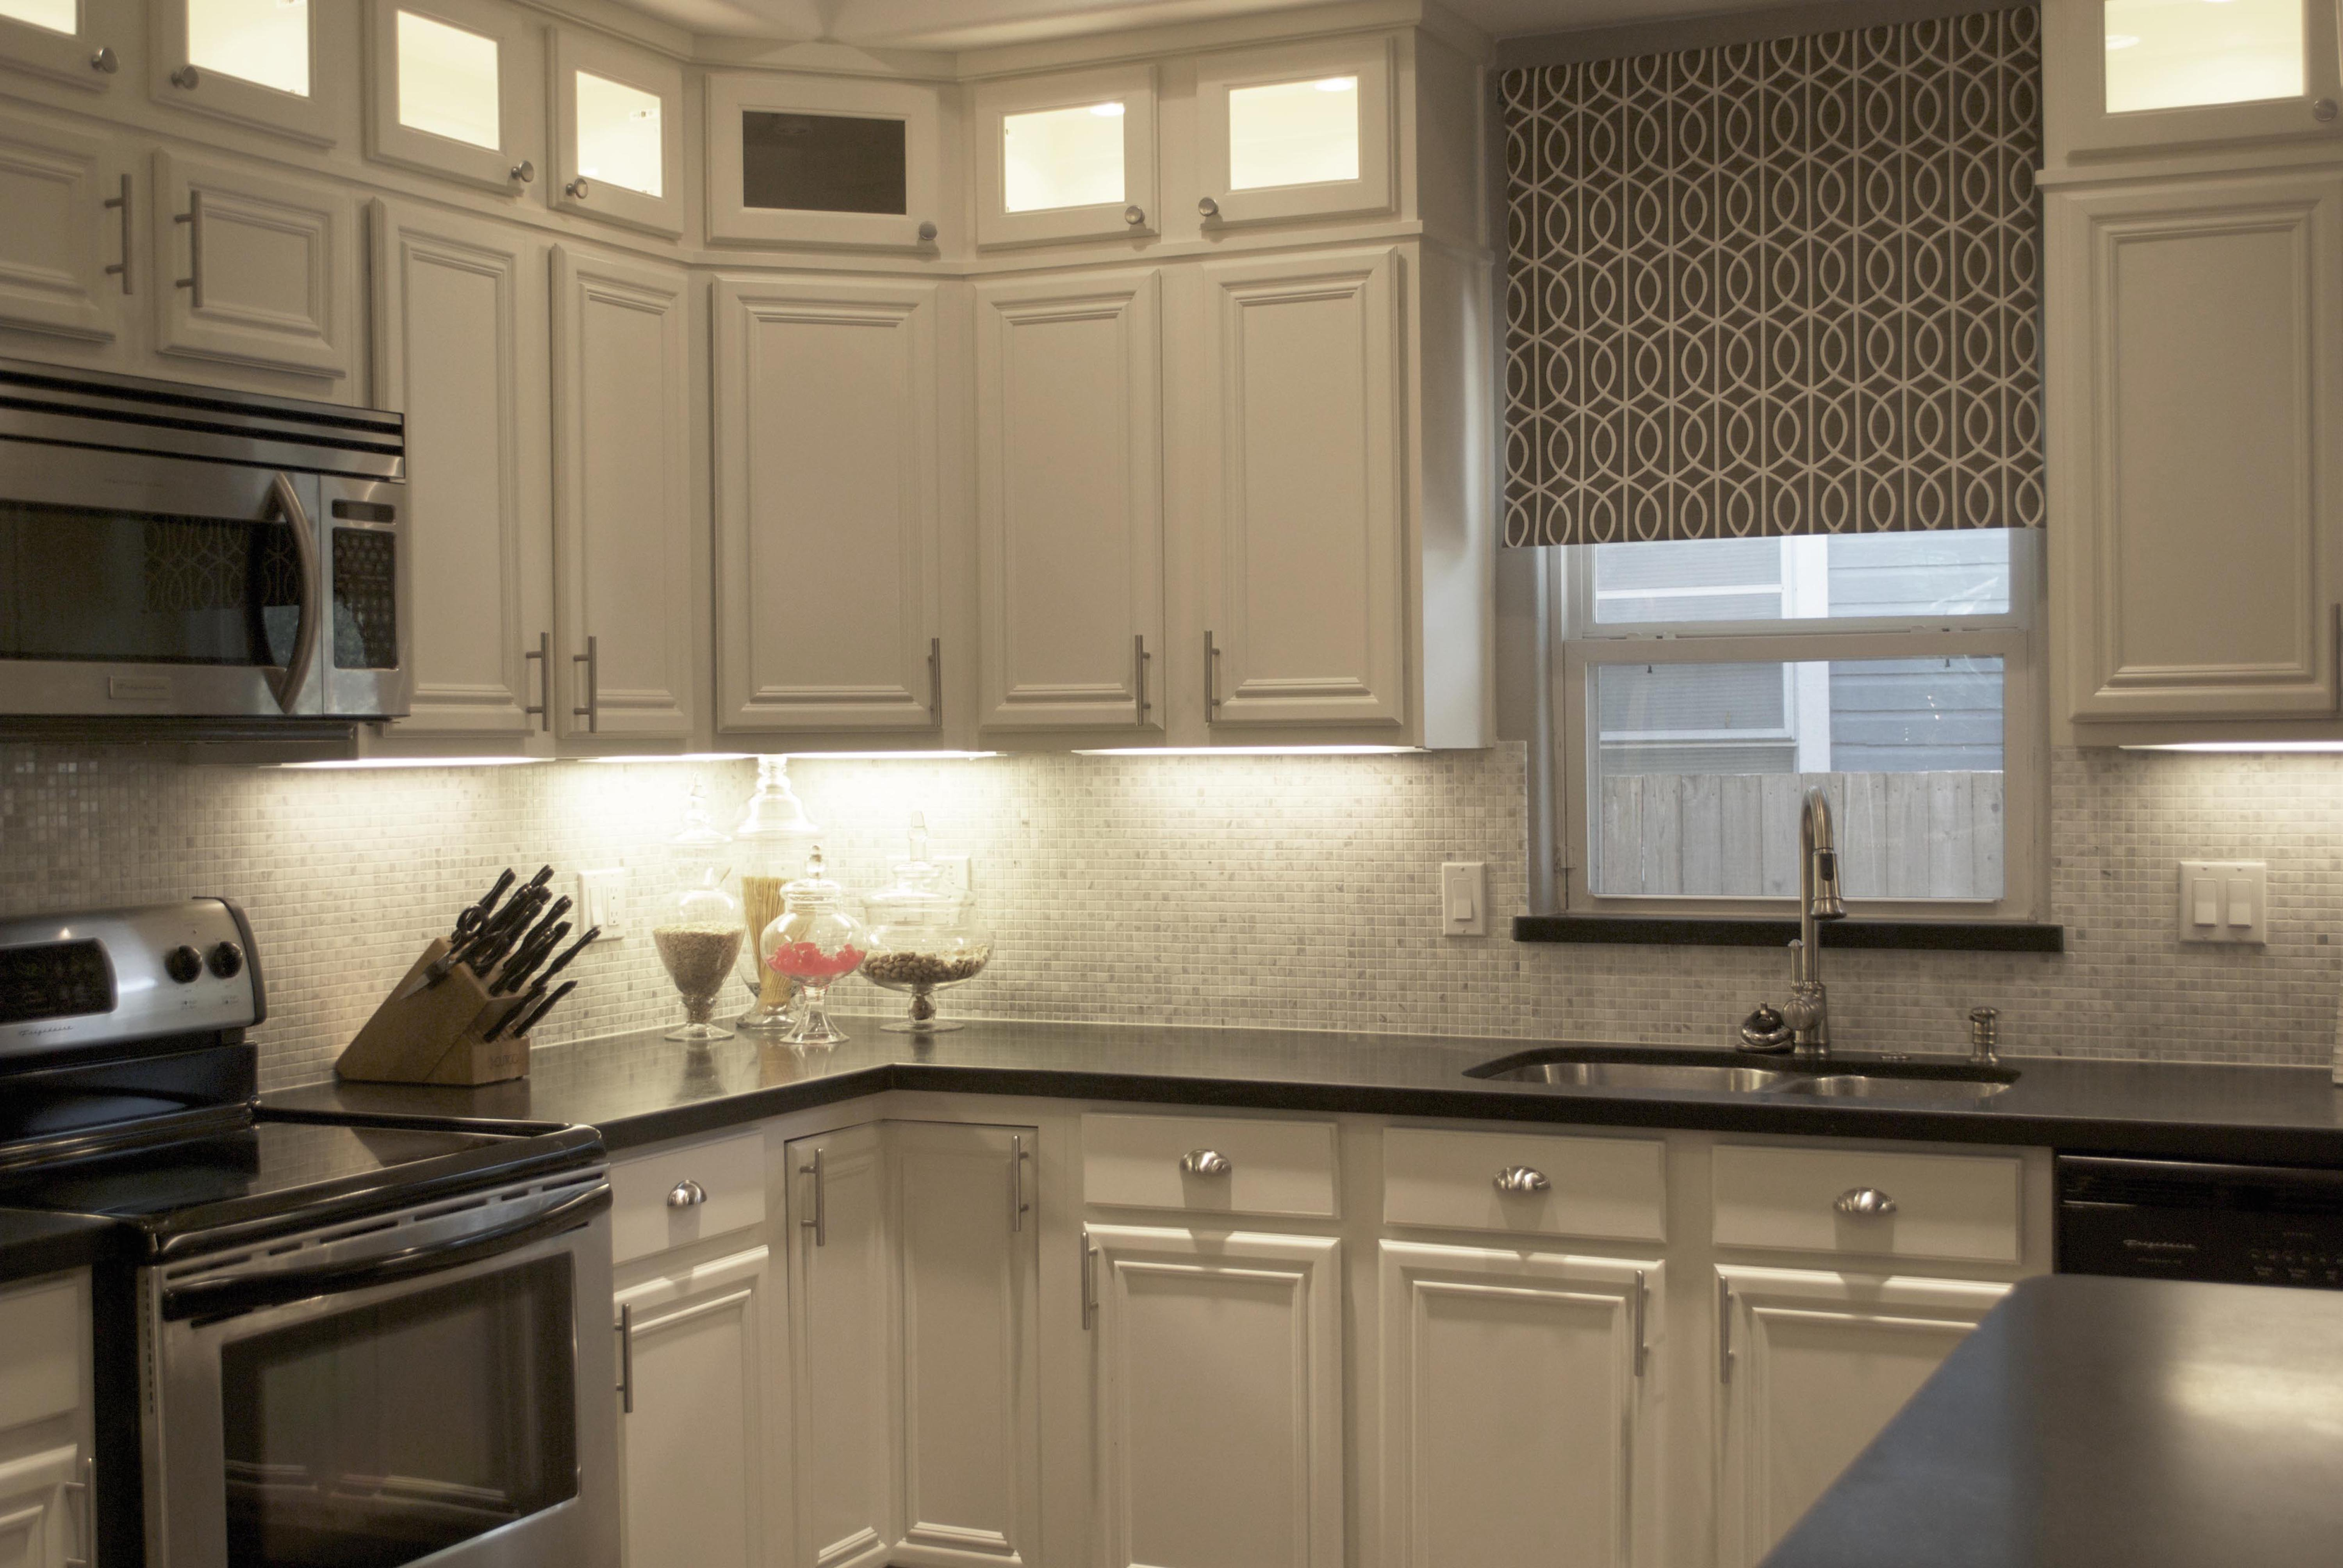 white kitchen cabinets and backsplash hotels with kitchens in rooms carrara marble homesfeed